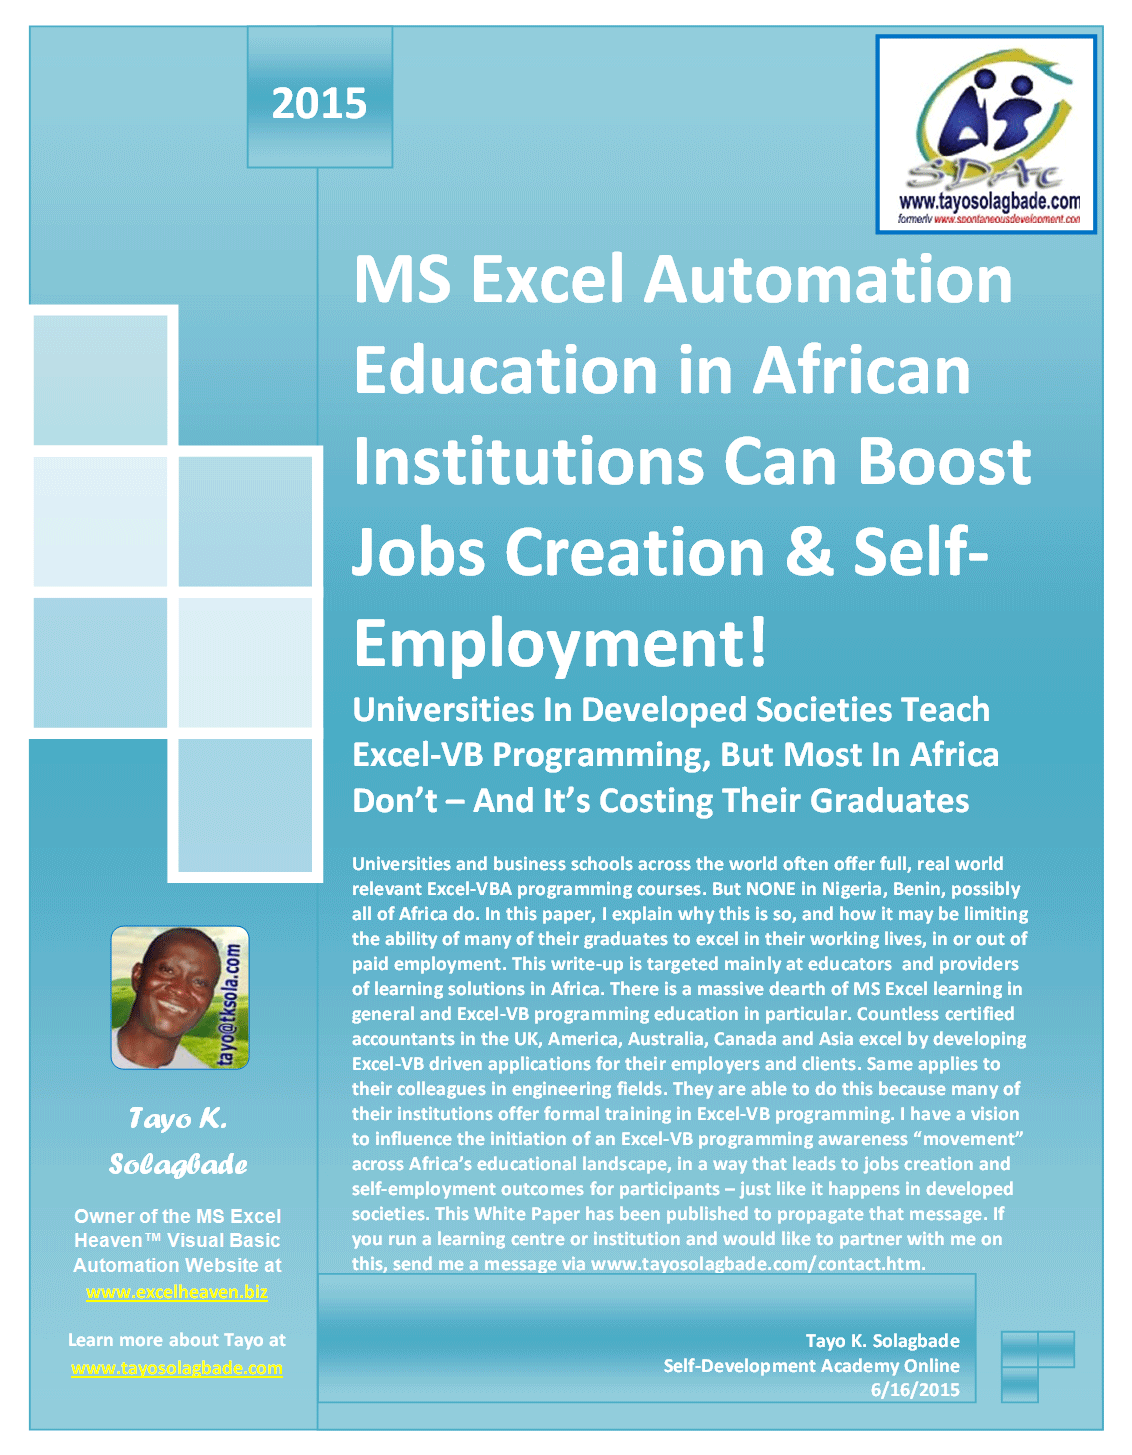 MS Excel Automation Education in African Institutions Can Boost Jobs Creation & Self-Employment!